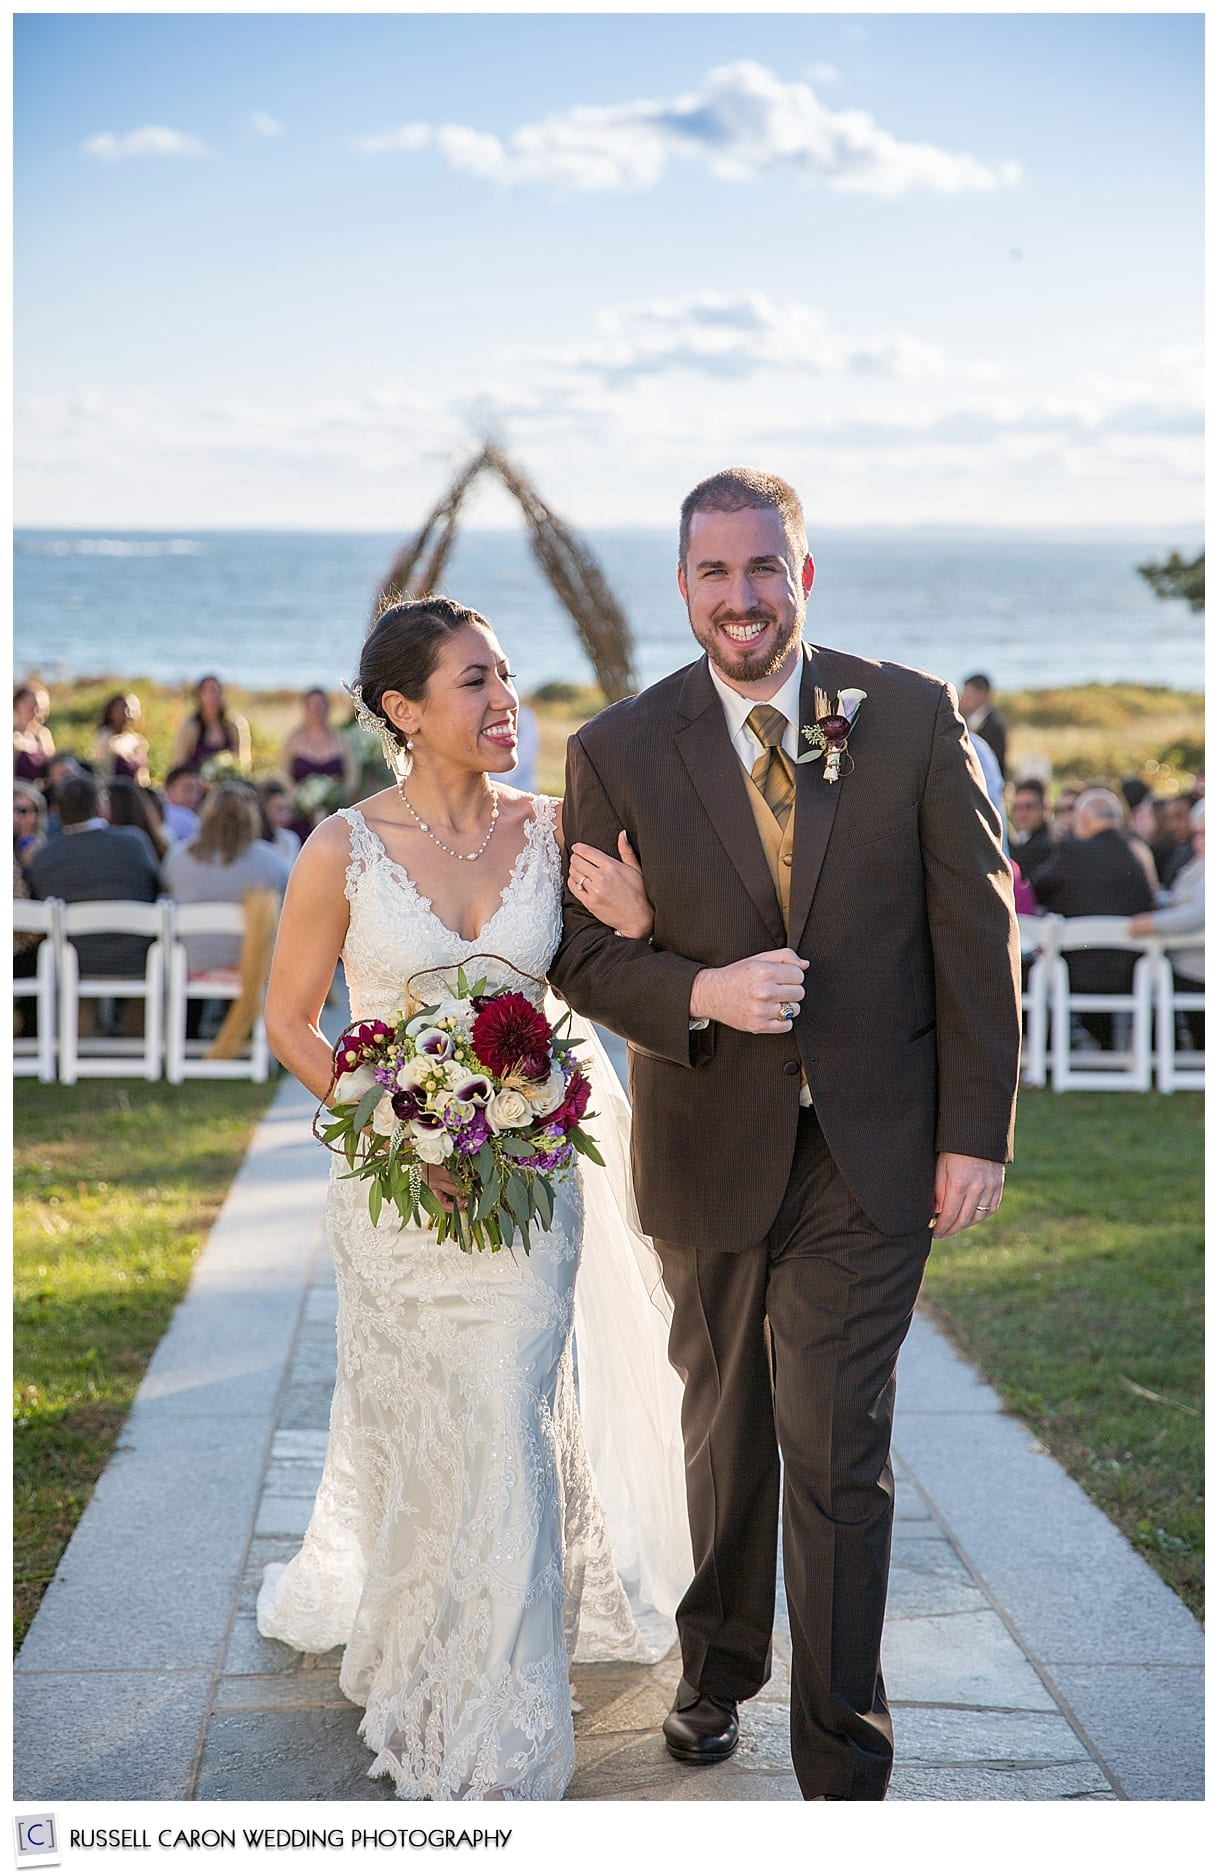 Colony Hotel weddings, bride and groom during wedding recessional